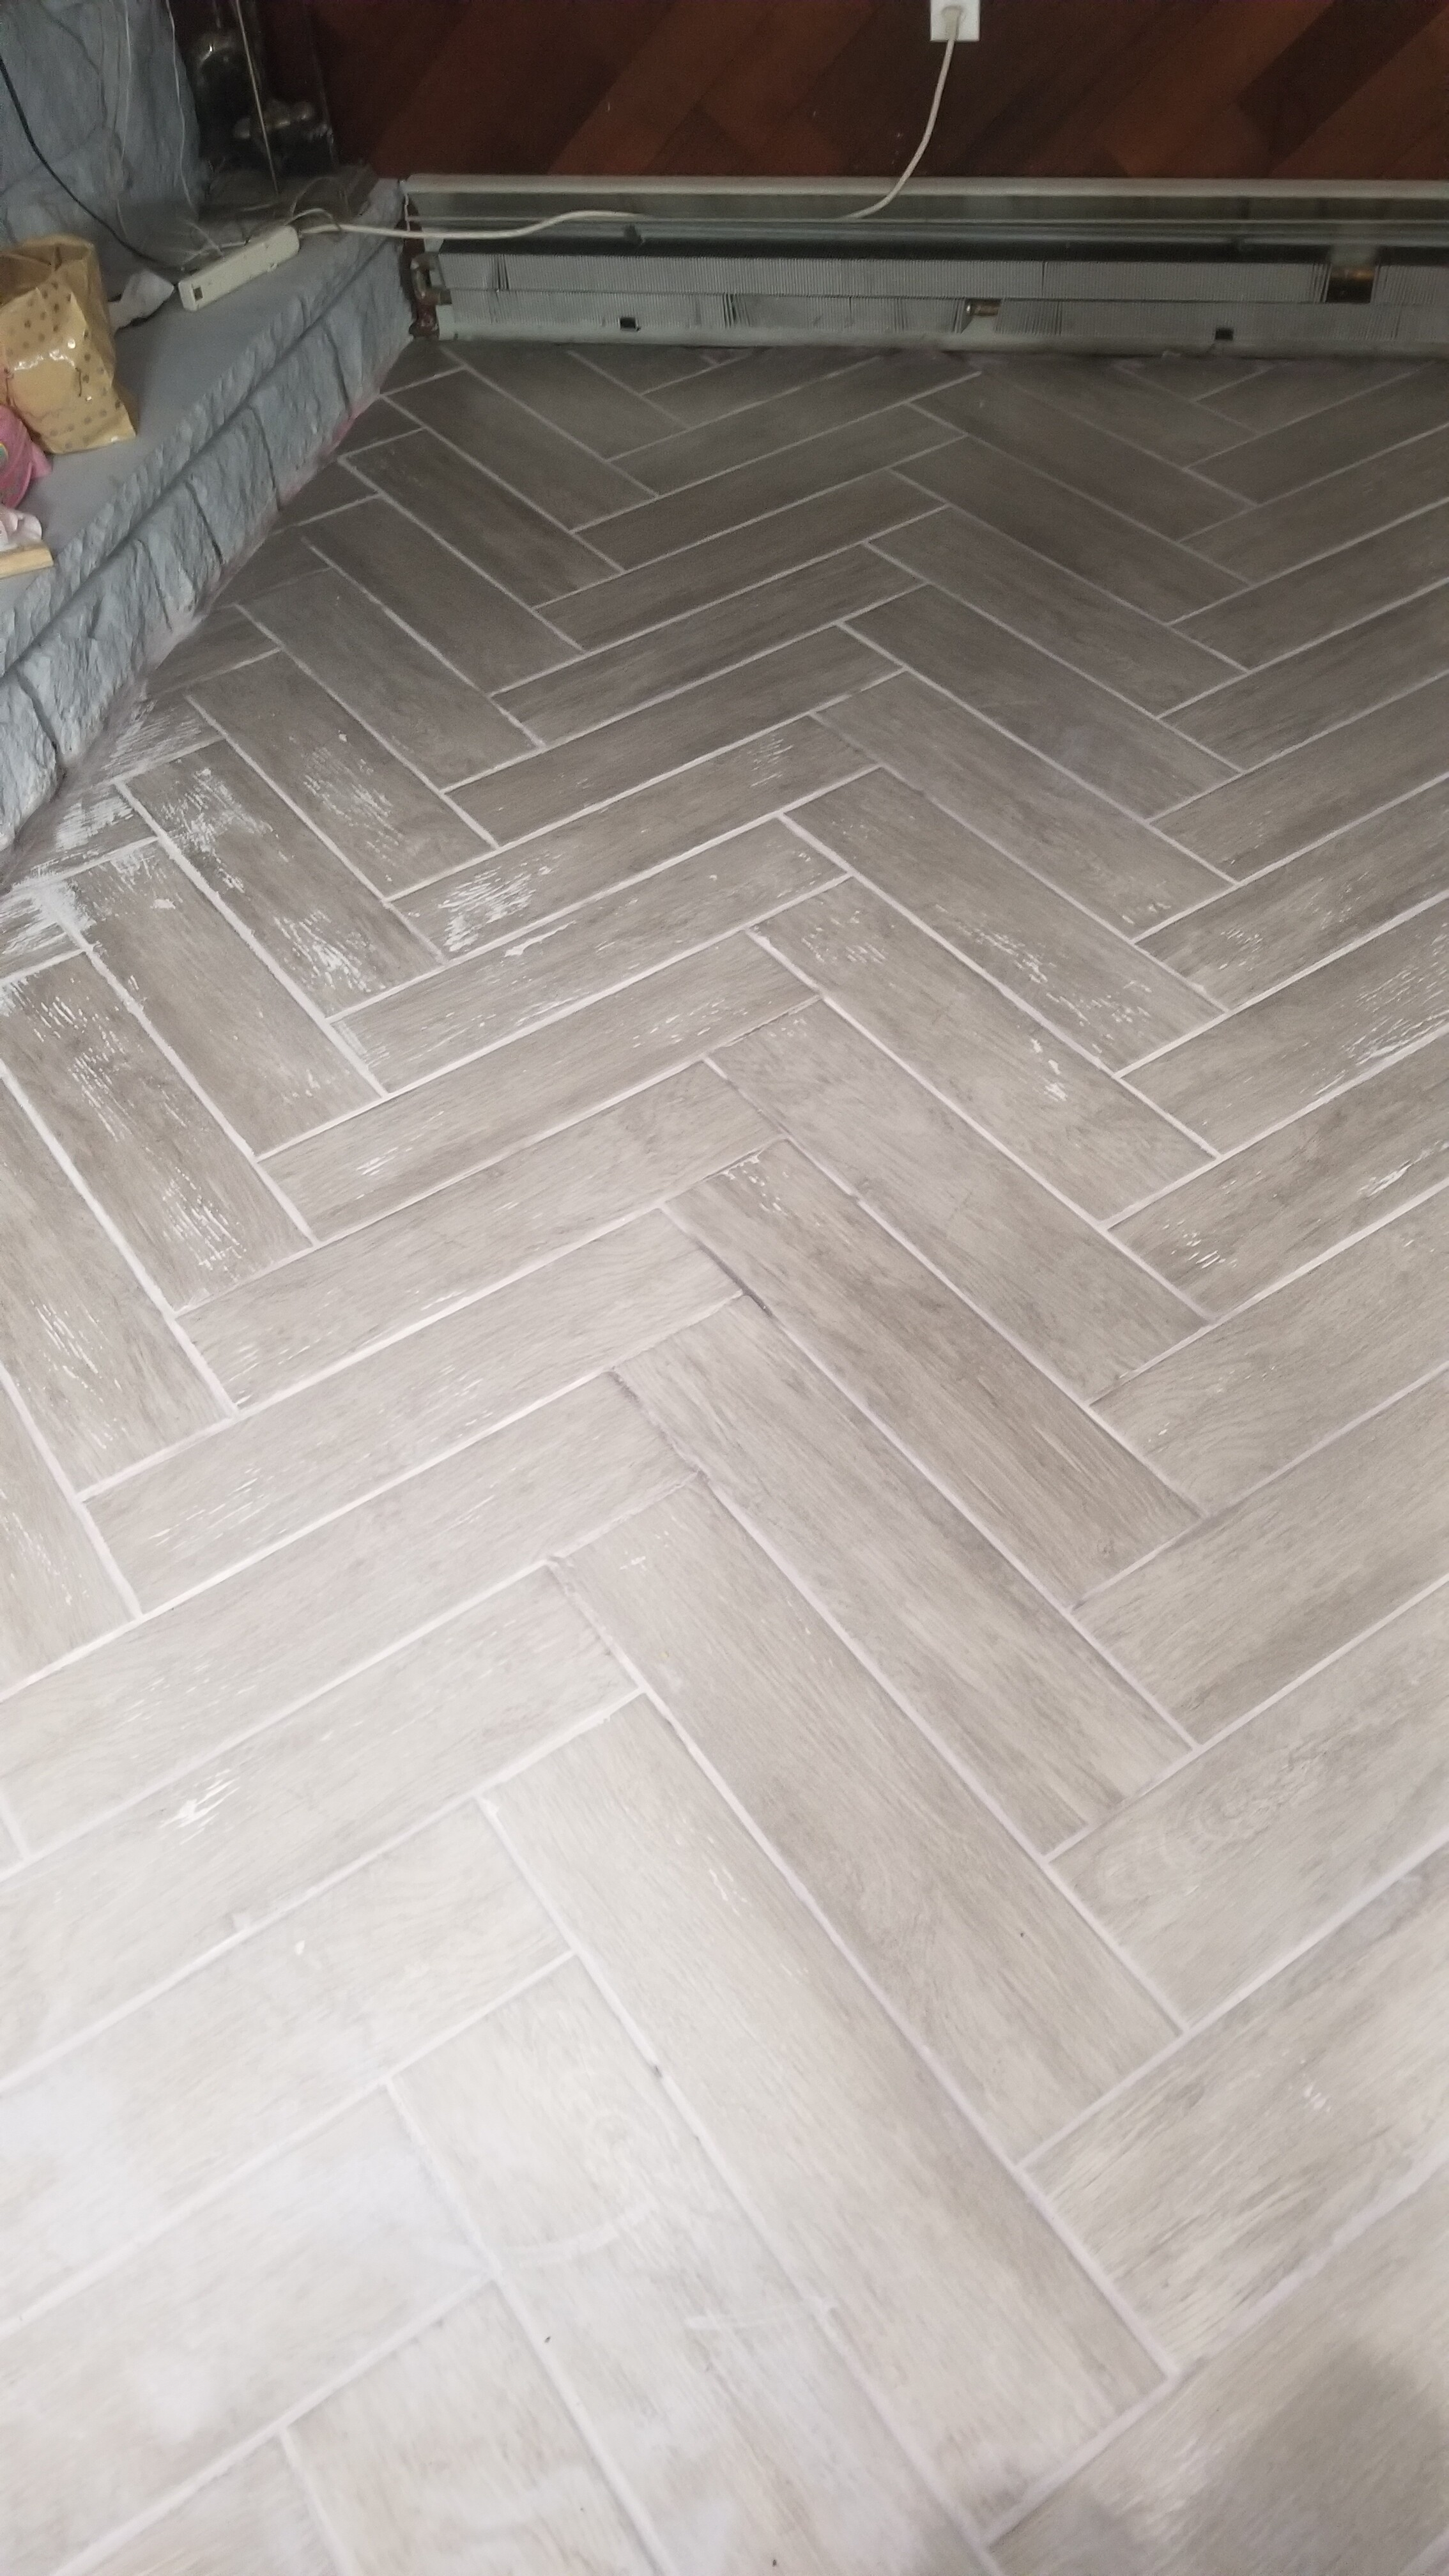 I messed up - grout dried : HomeImprovement